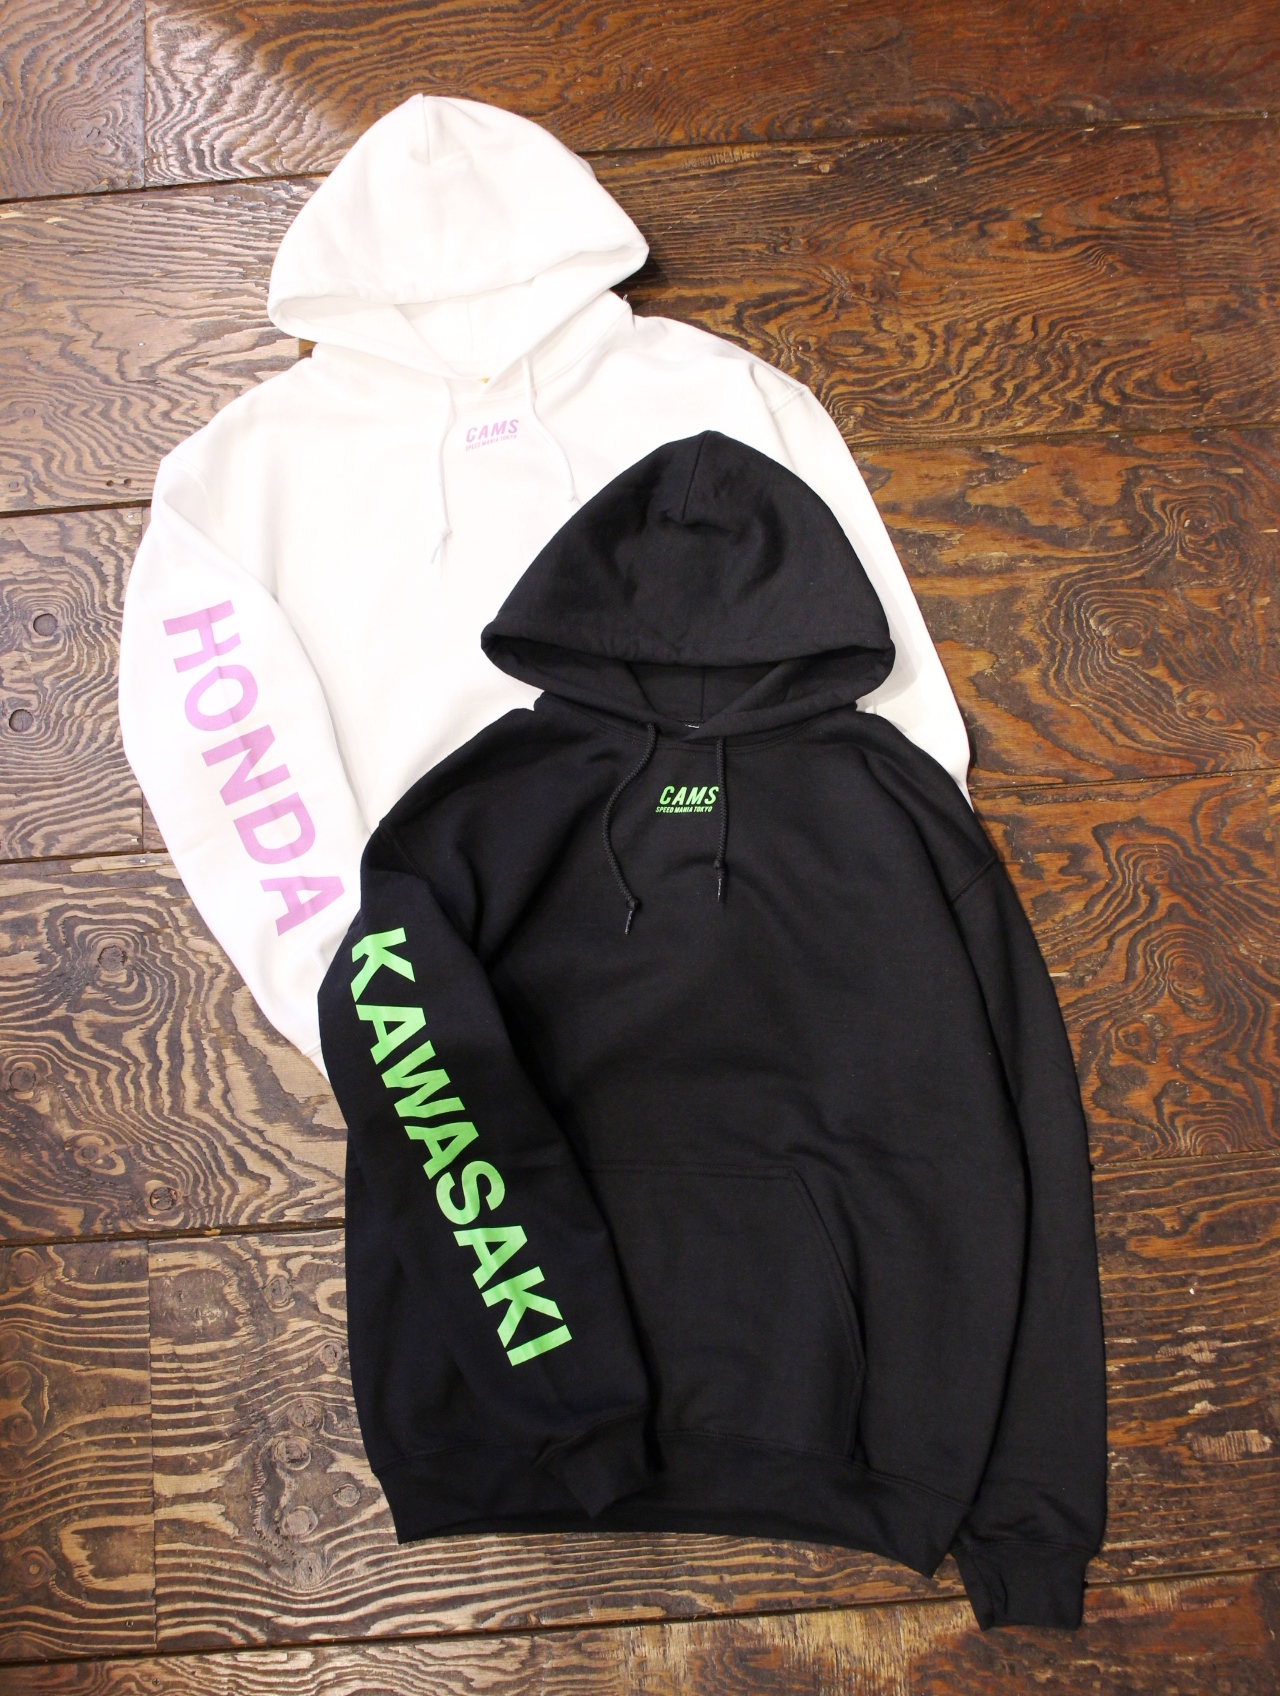 CHALLENGER × SAM'S   「 CAMS LOGO HOODIE 」 パーカー